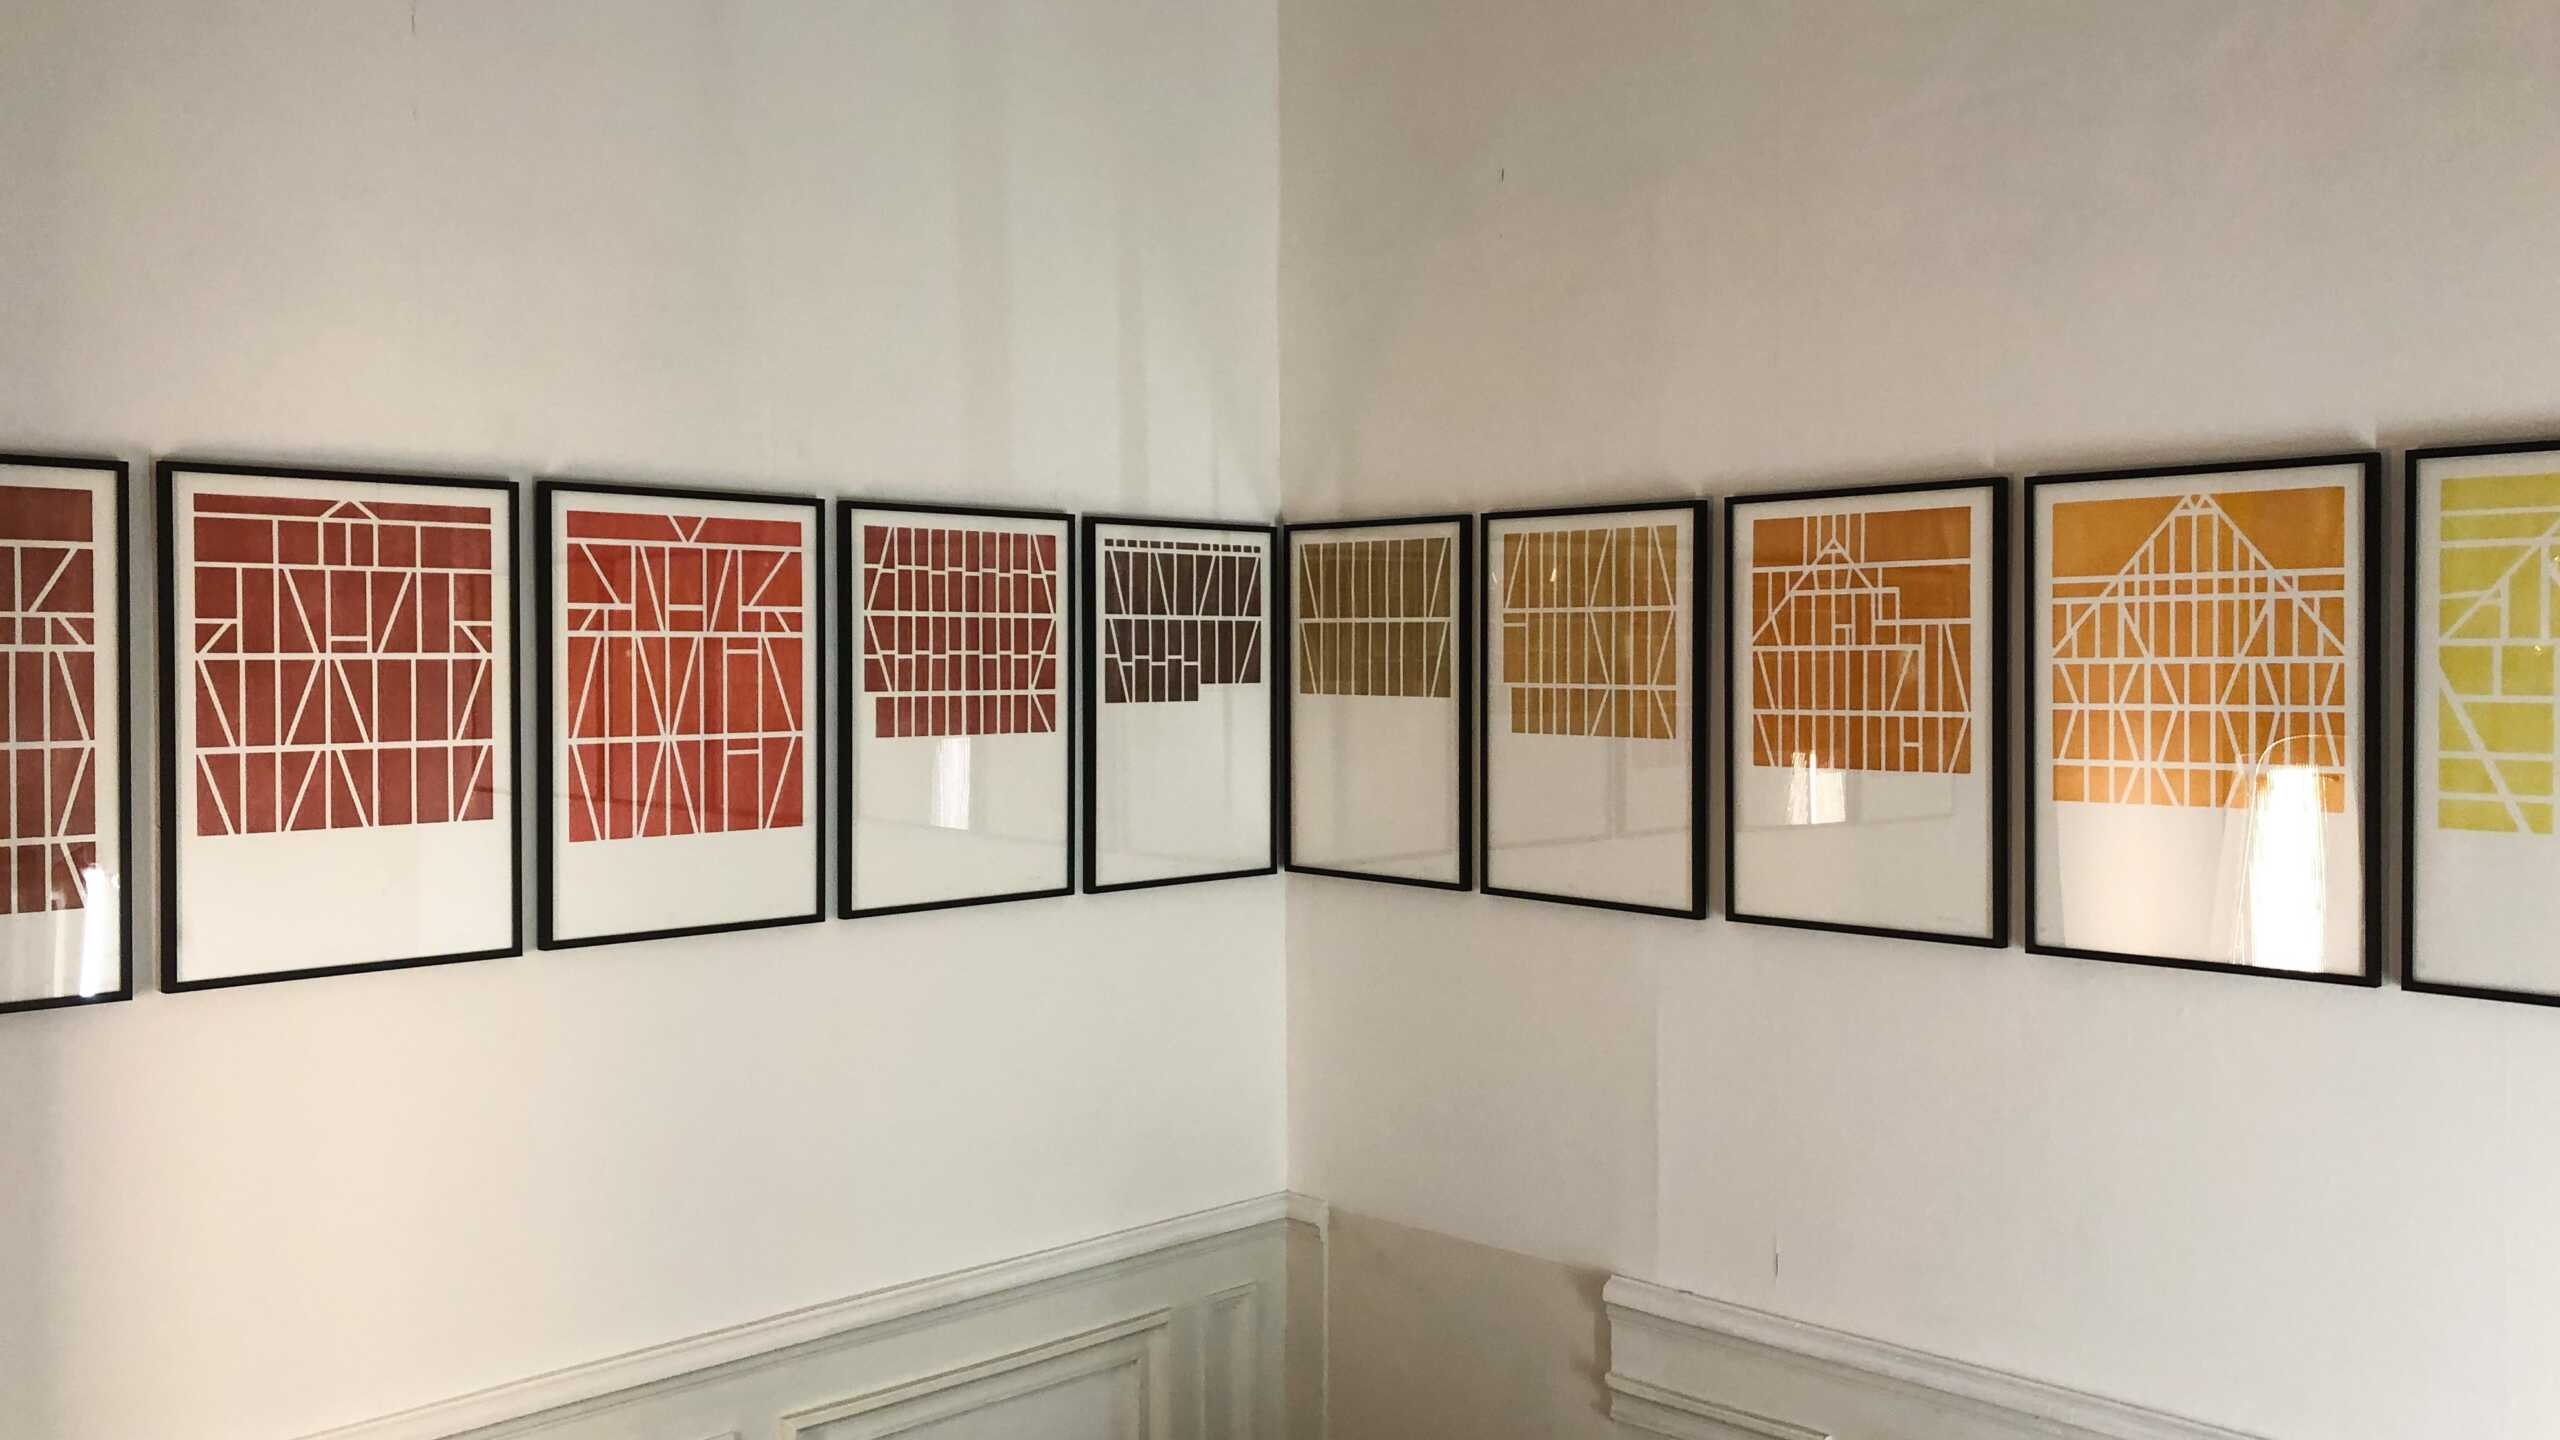 Gilles Pourtier's engravings inspired by Bernd and Hilla Becher